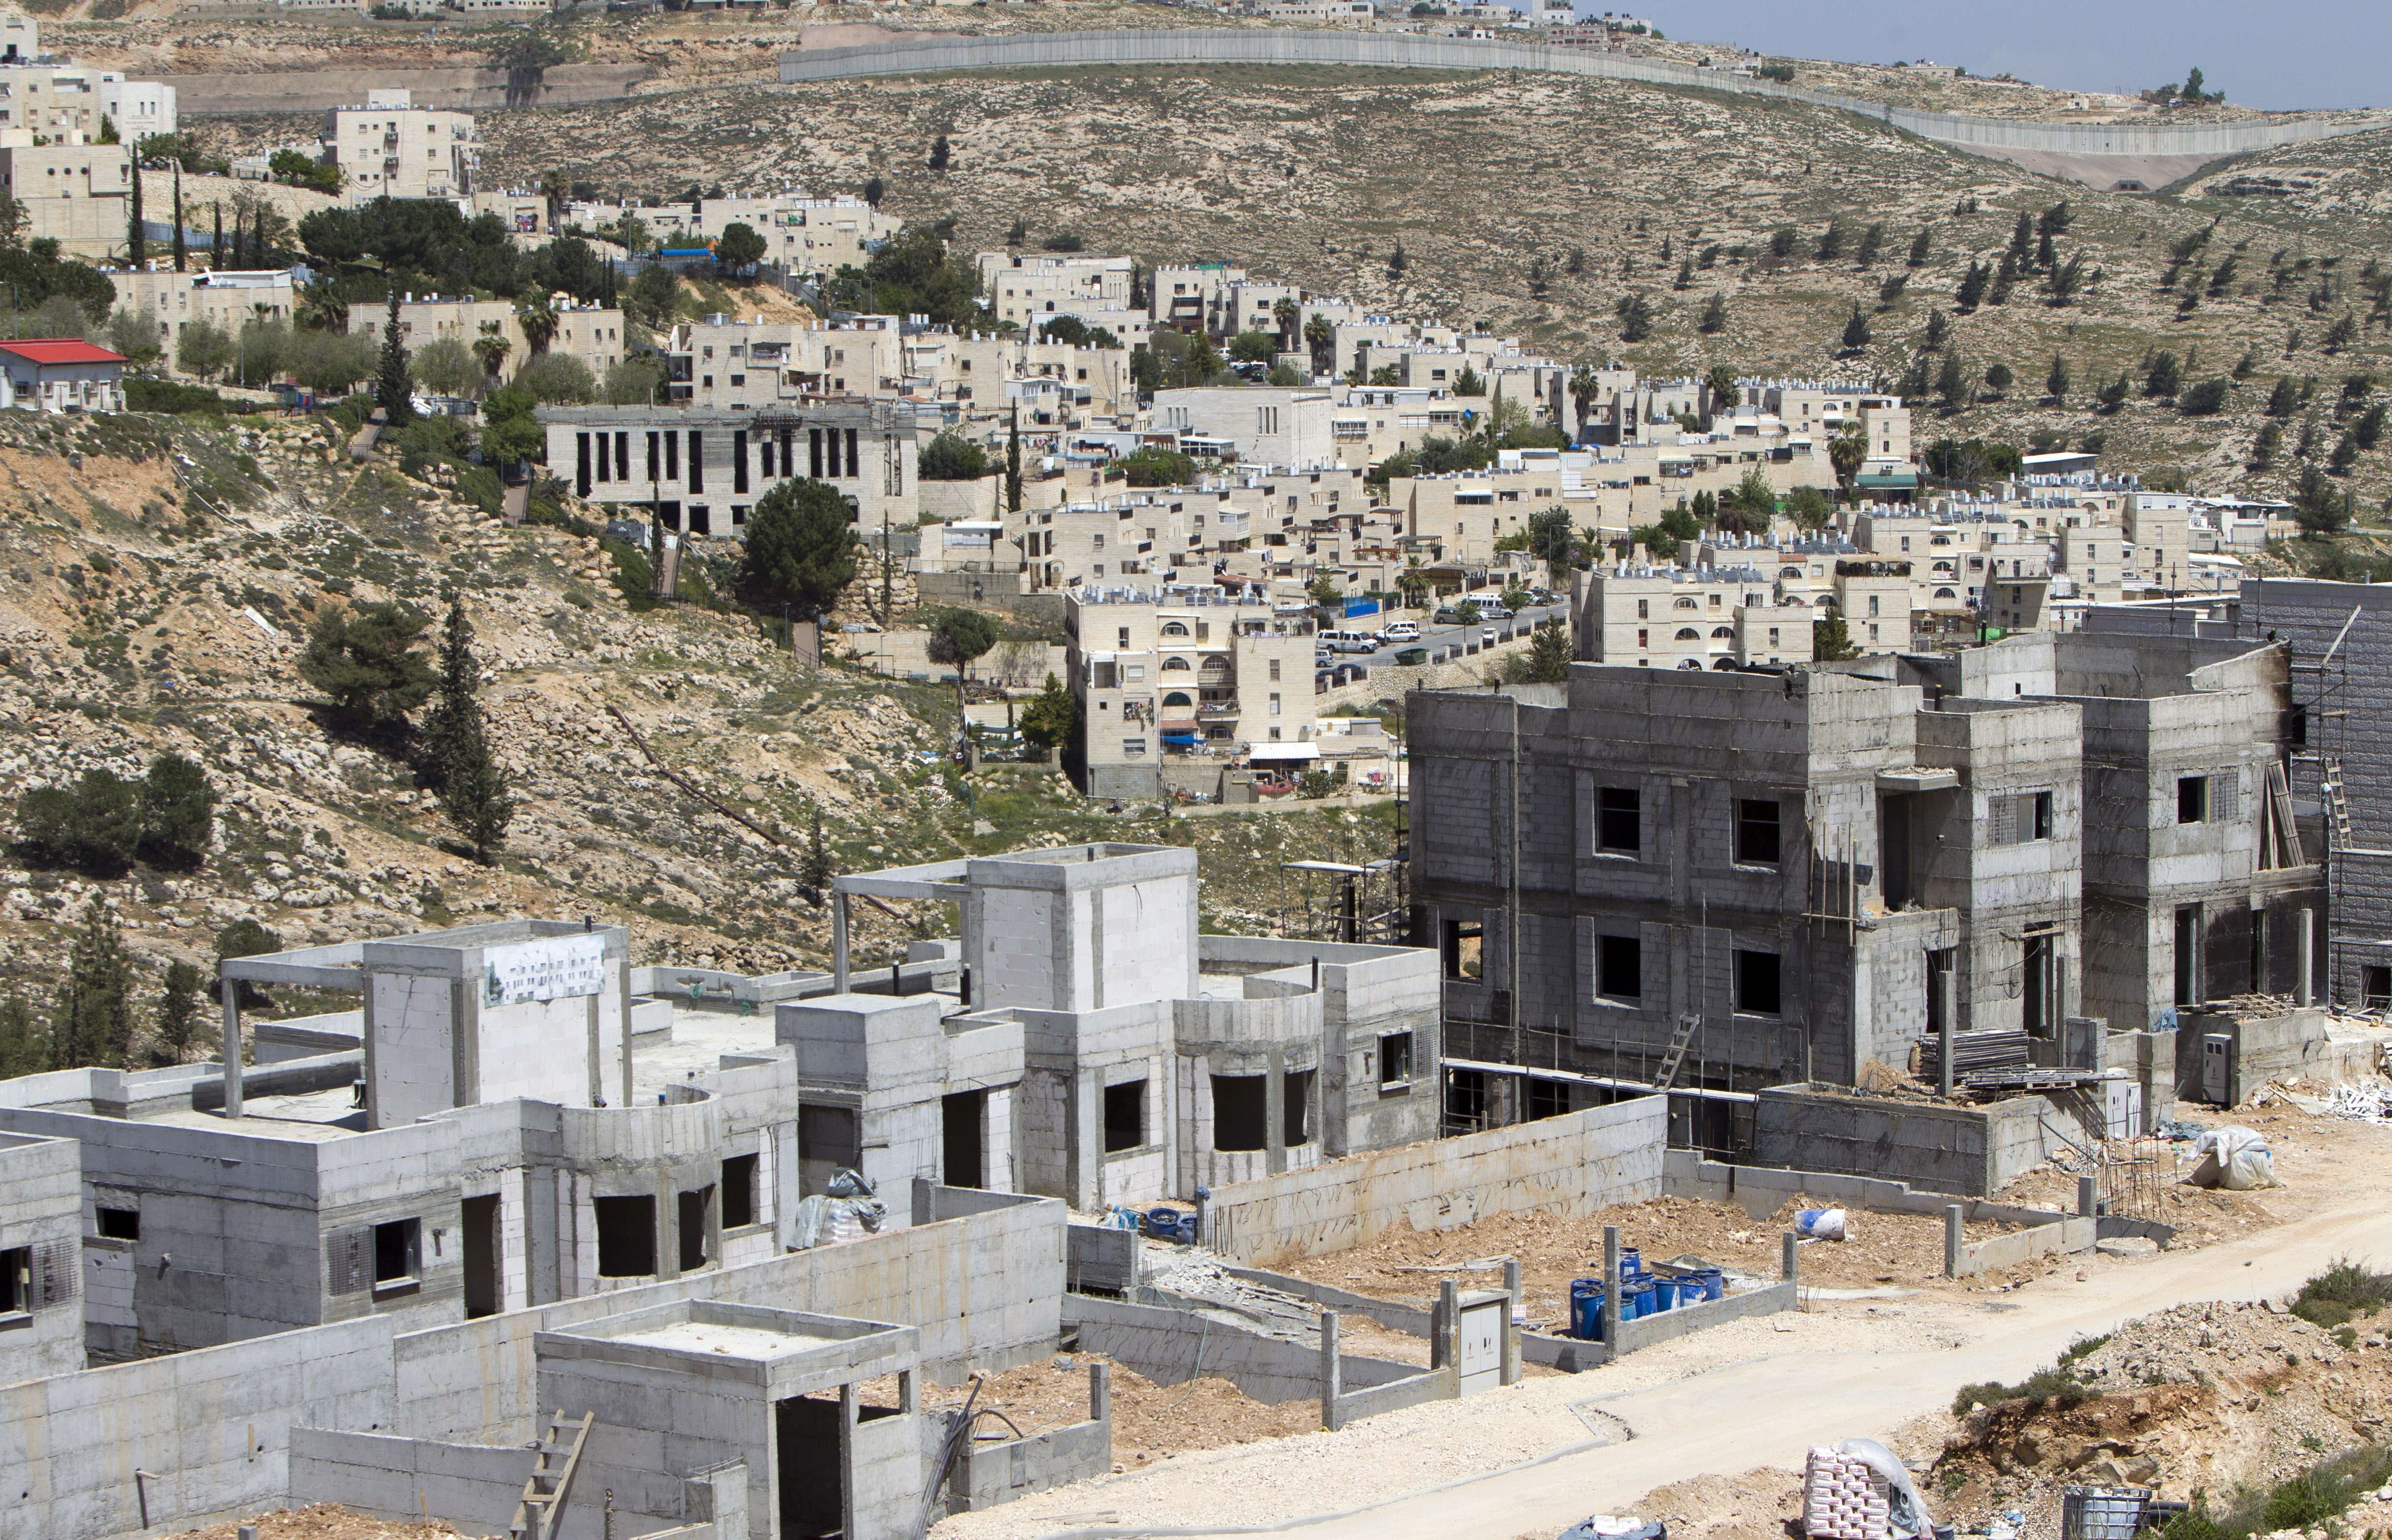 Settlement activities in the Occupied Palestinian Territories and the Golan Heights, both occupied since 1967, are considered illegal in international law. (AFP PHOTO/AHMAD GHARABLI)